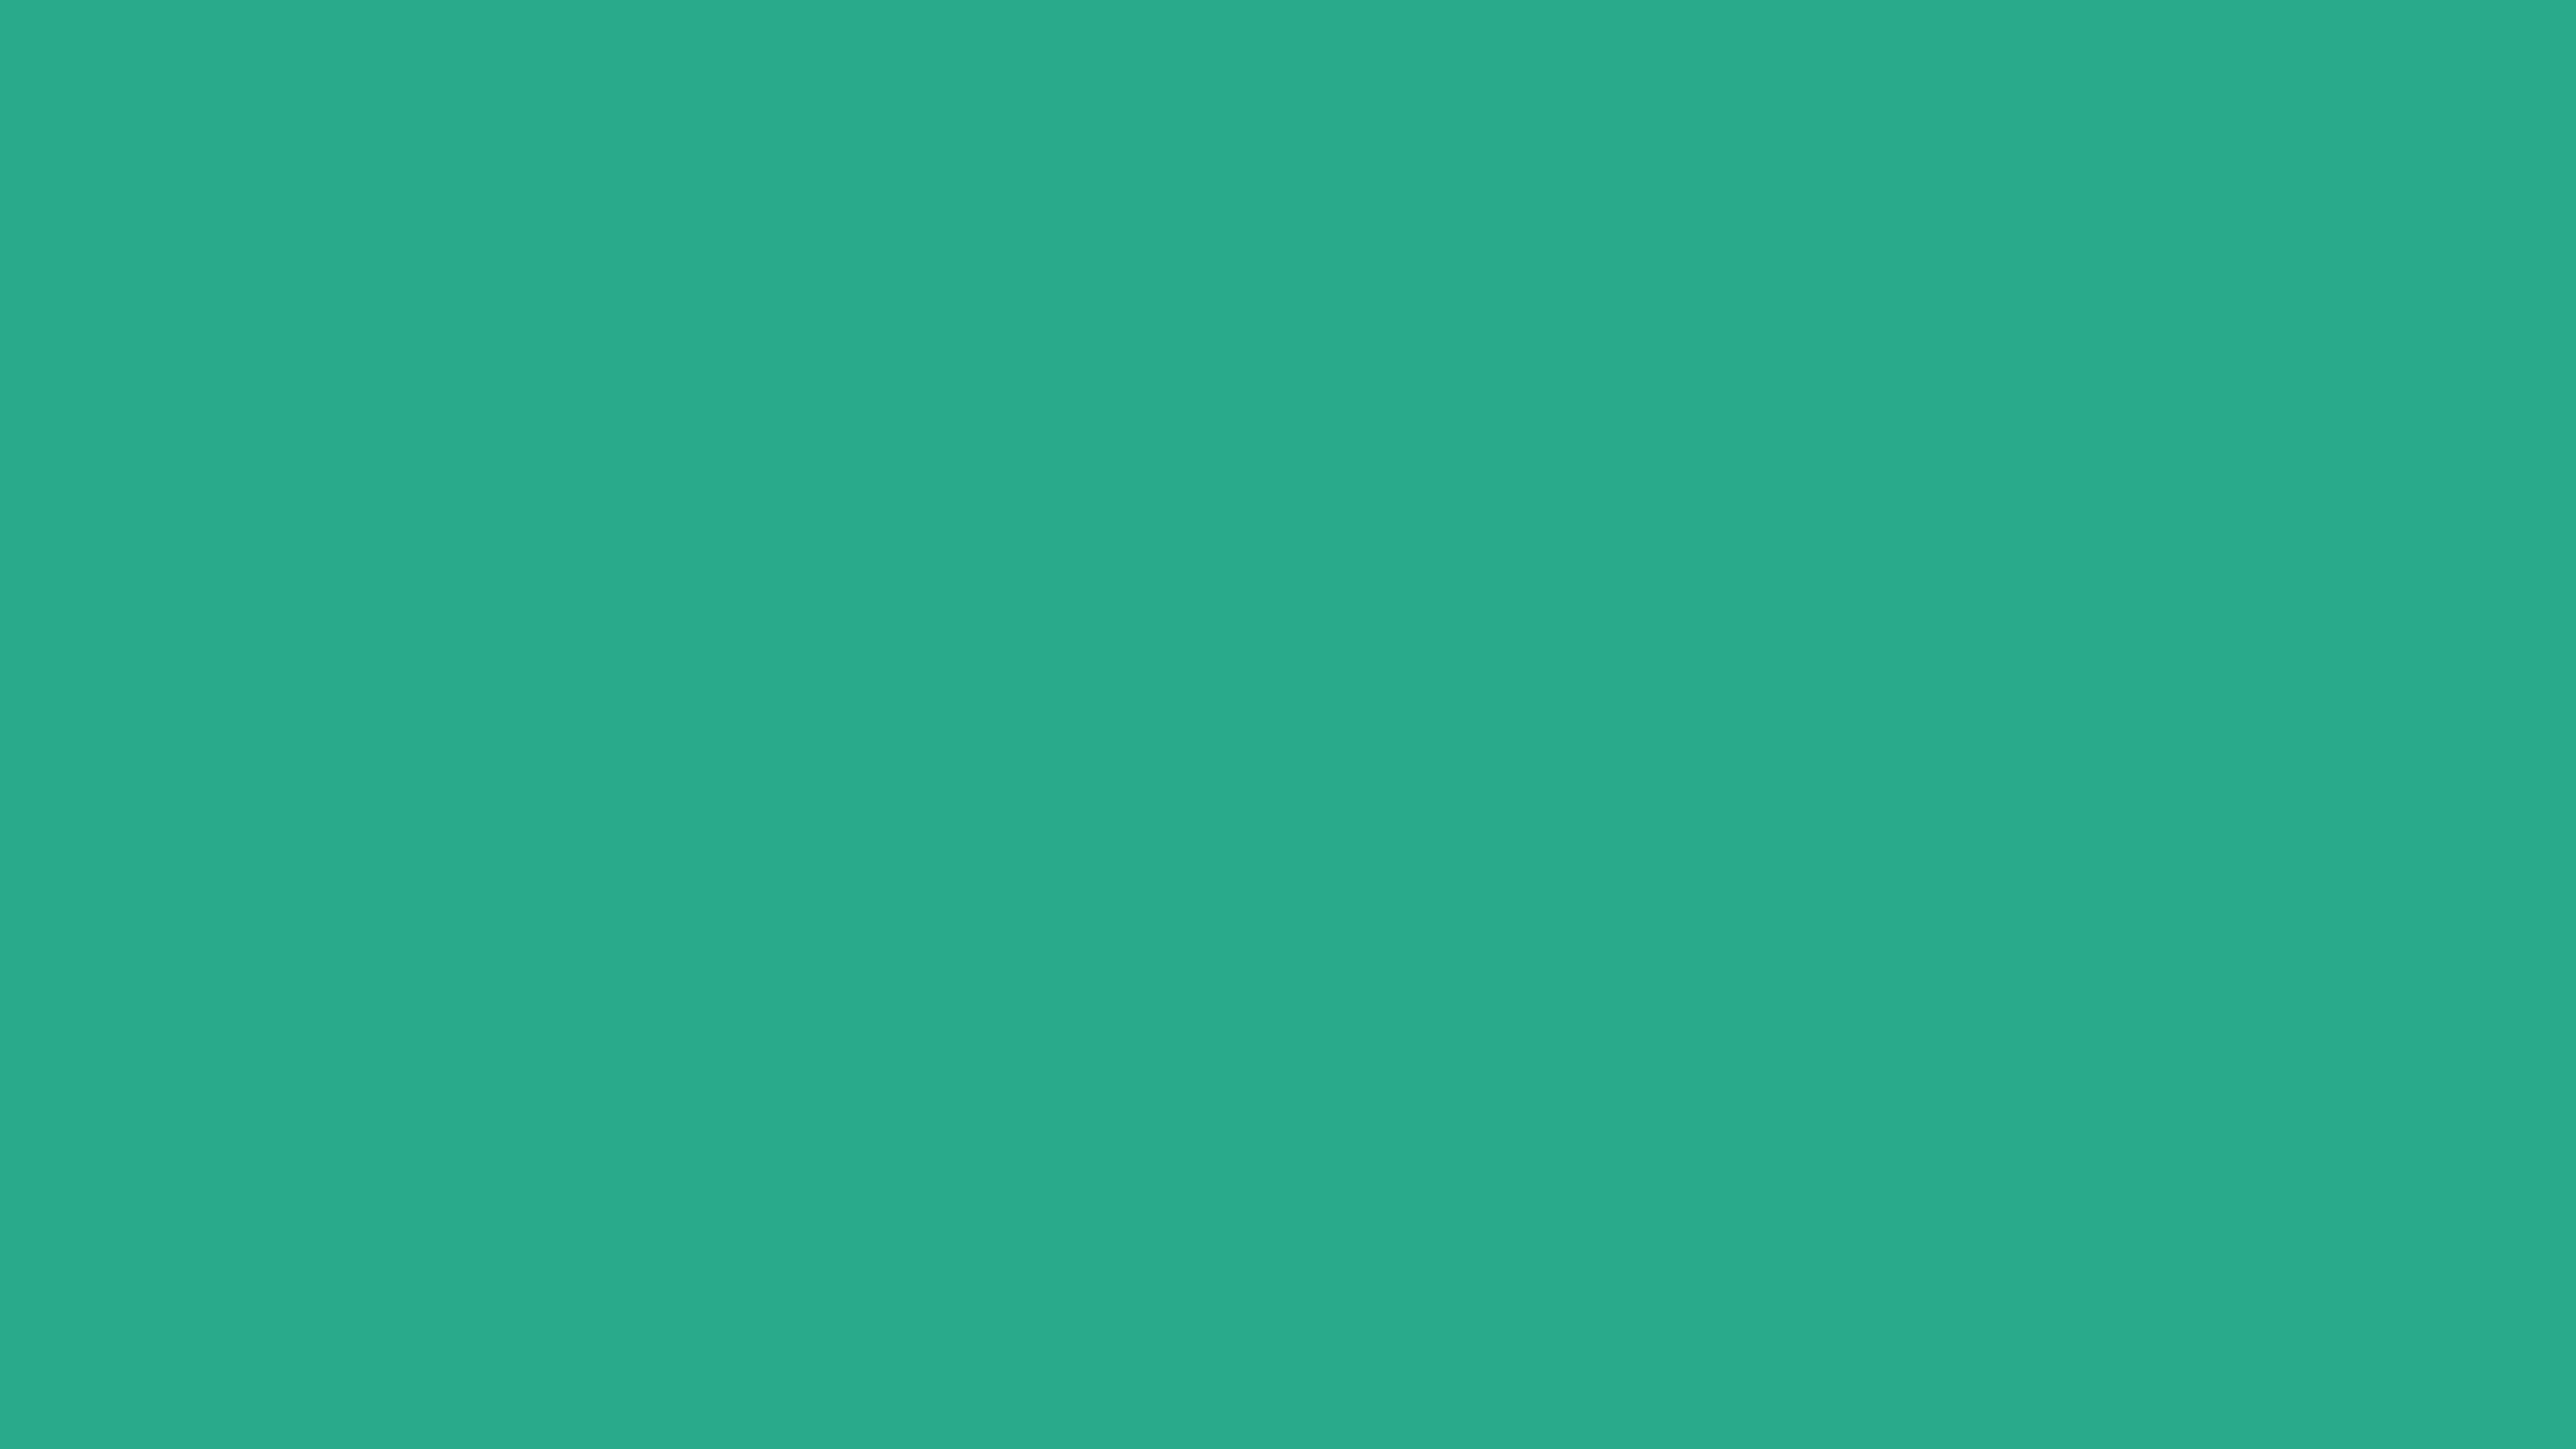 3840x2160 Jungle Green Solid Color Background